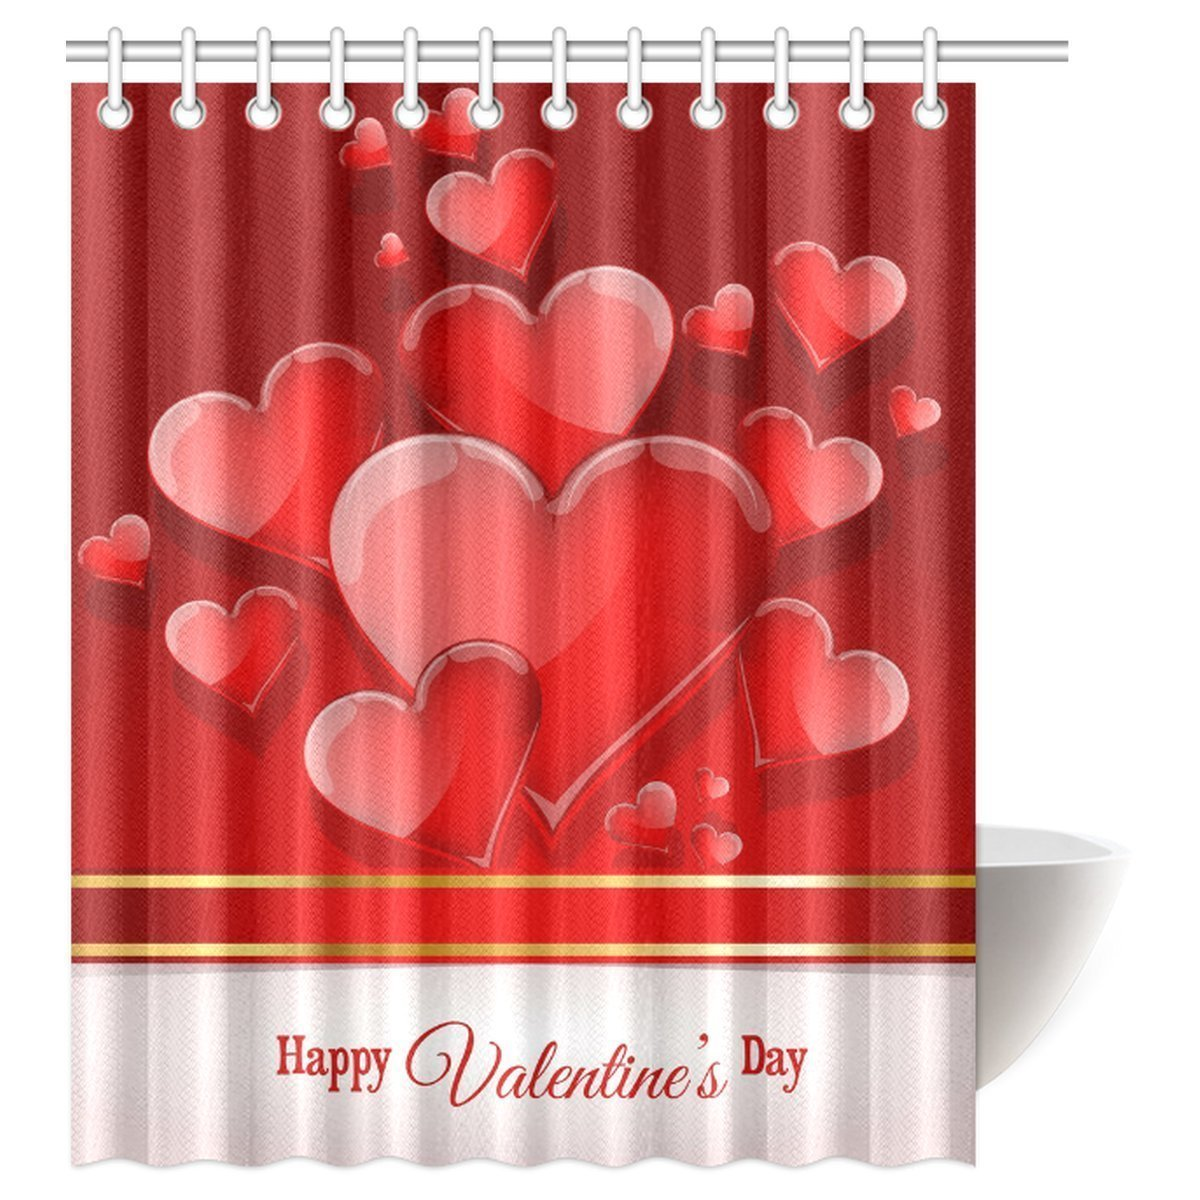 Memory Home Valentines Day Love Waterproof Polyester Fabric Shower Curtain  Funny Bathroom Decoration Red Heart Picture - Online Get Cheap Valentine Shower Curtains -Aliexpress.com